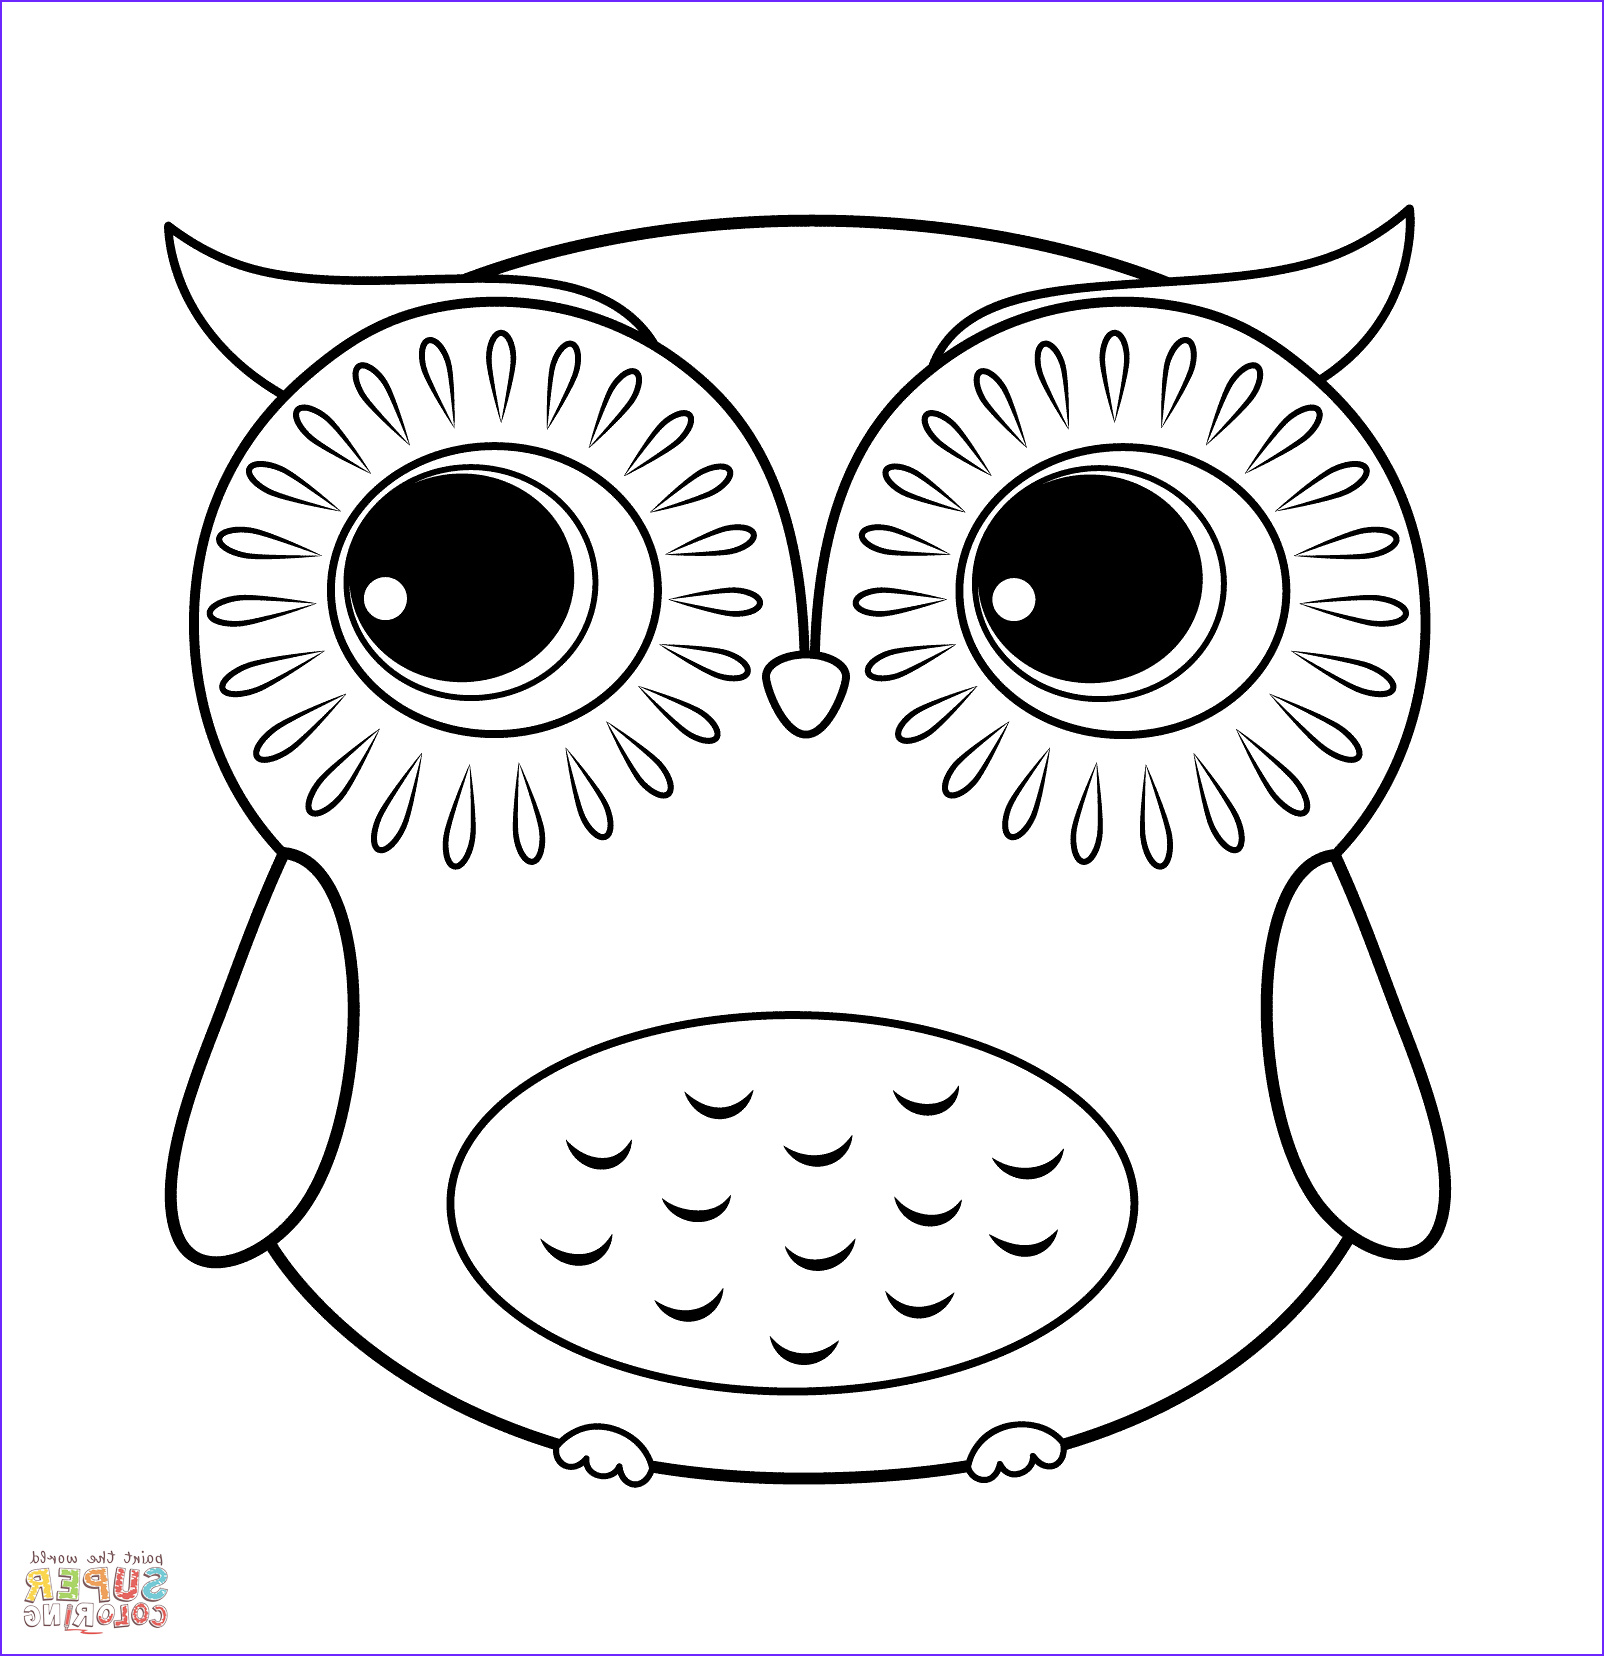 Owl Coloring Sheet Cool Stock Cartoon Owl Coloring Page